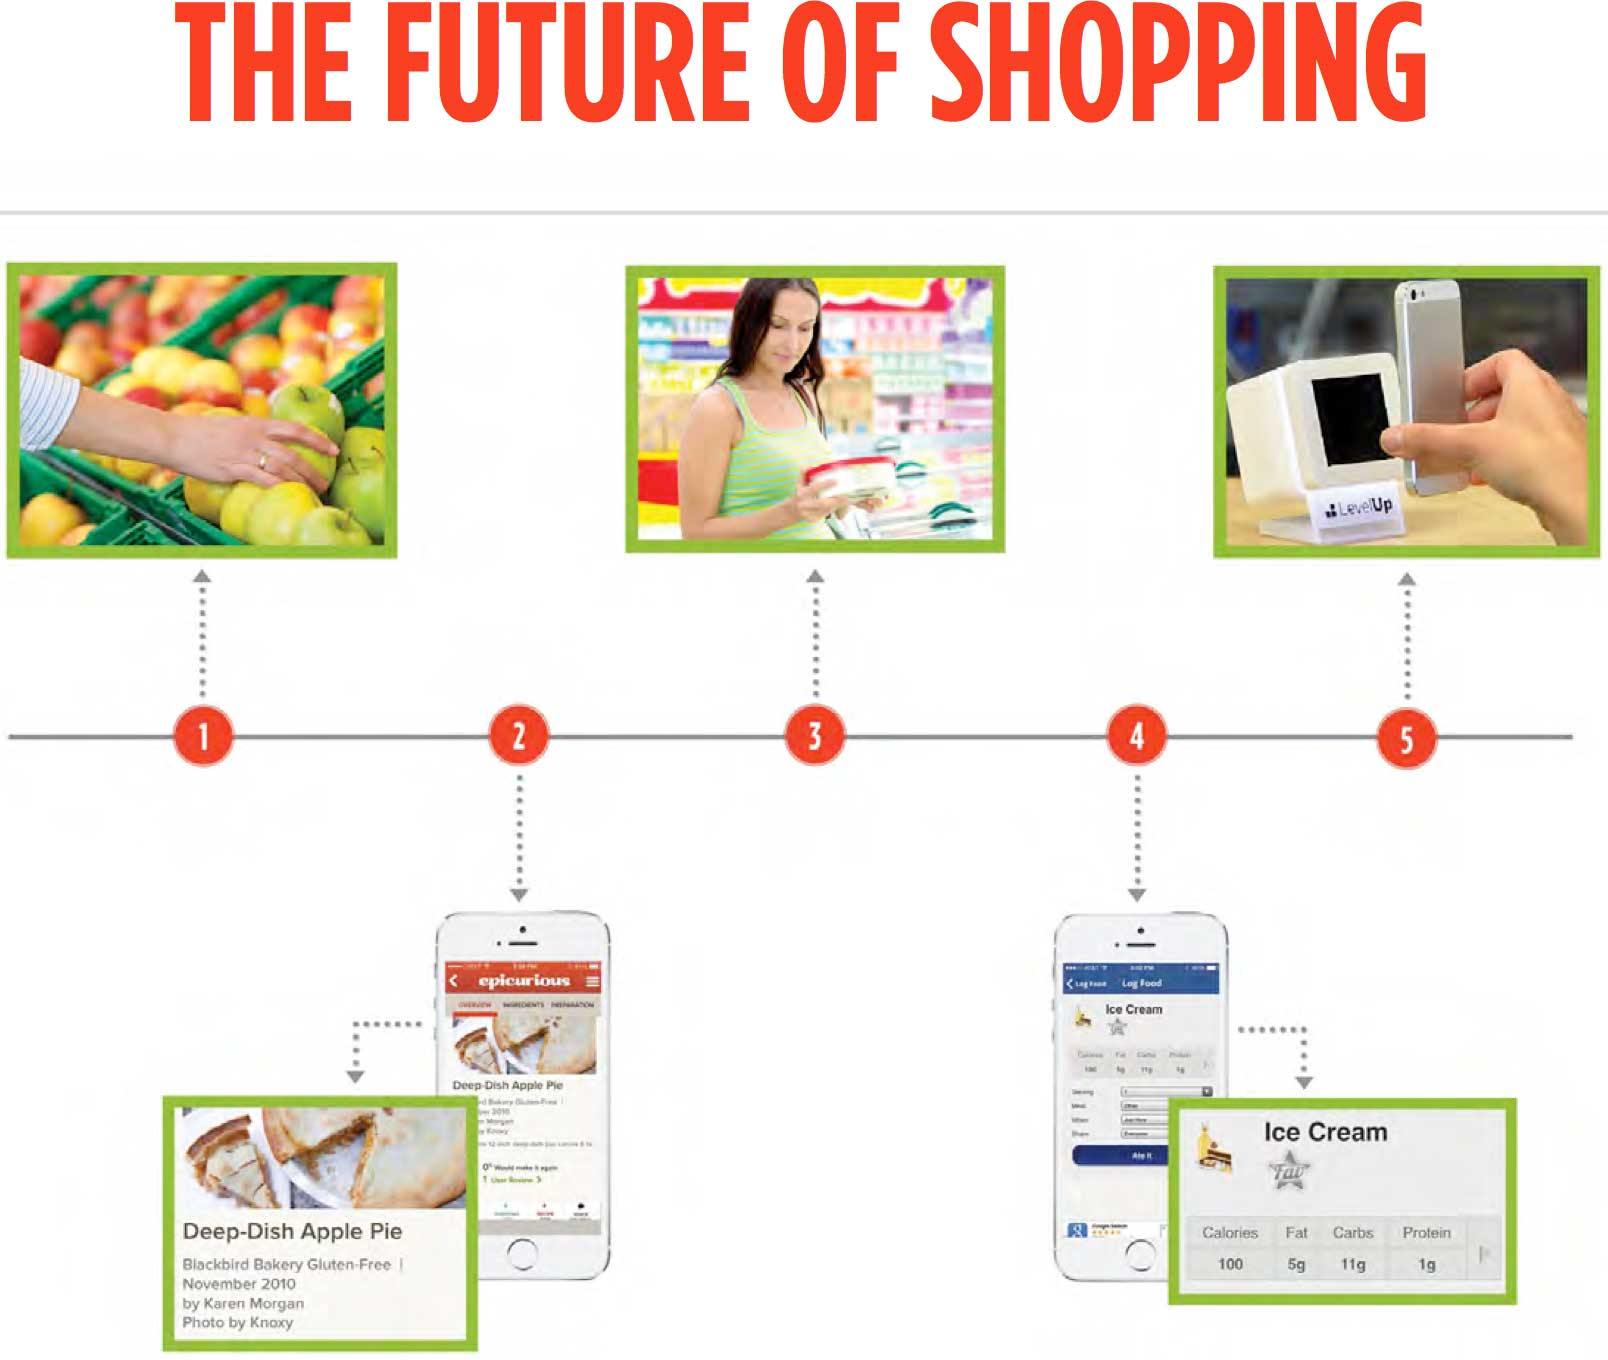 contextual shopping is coming